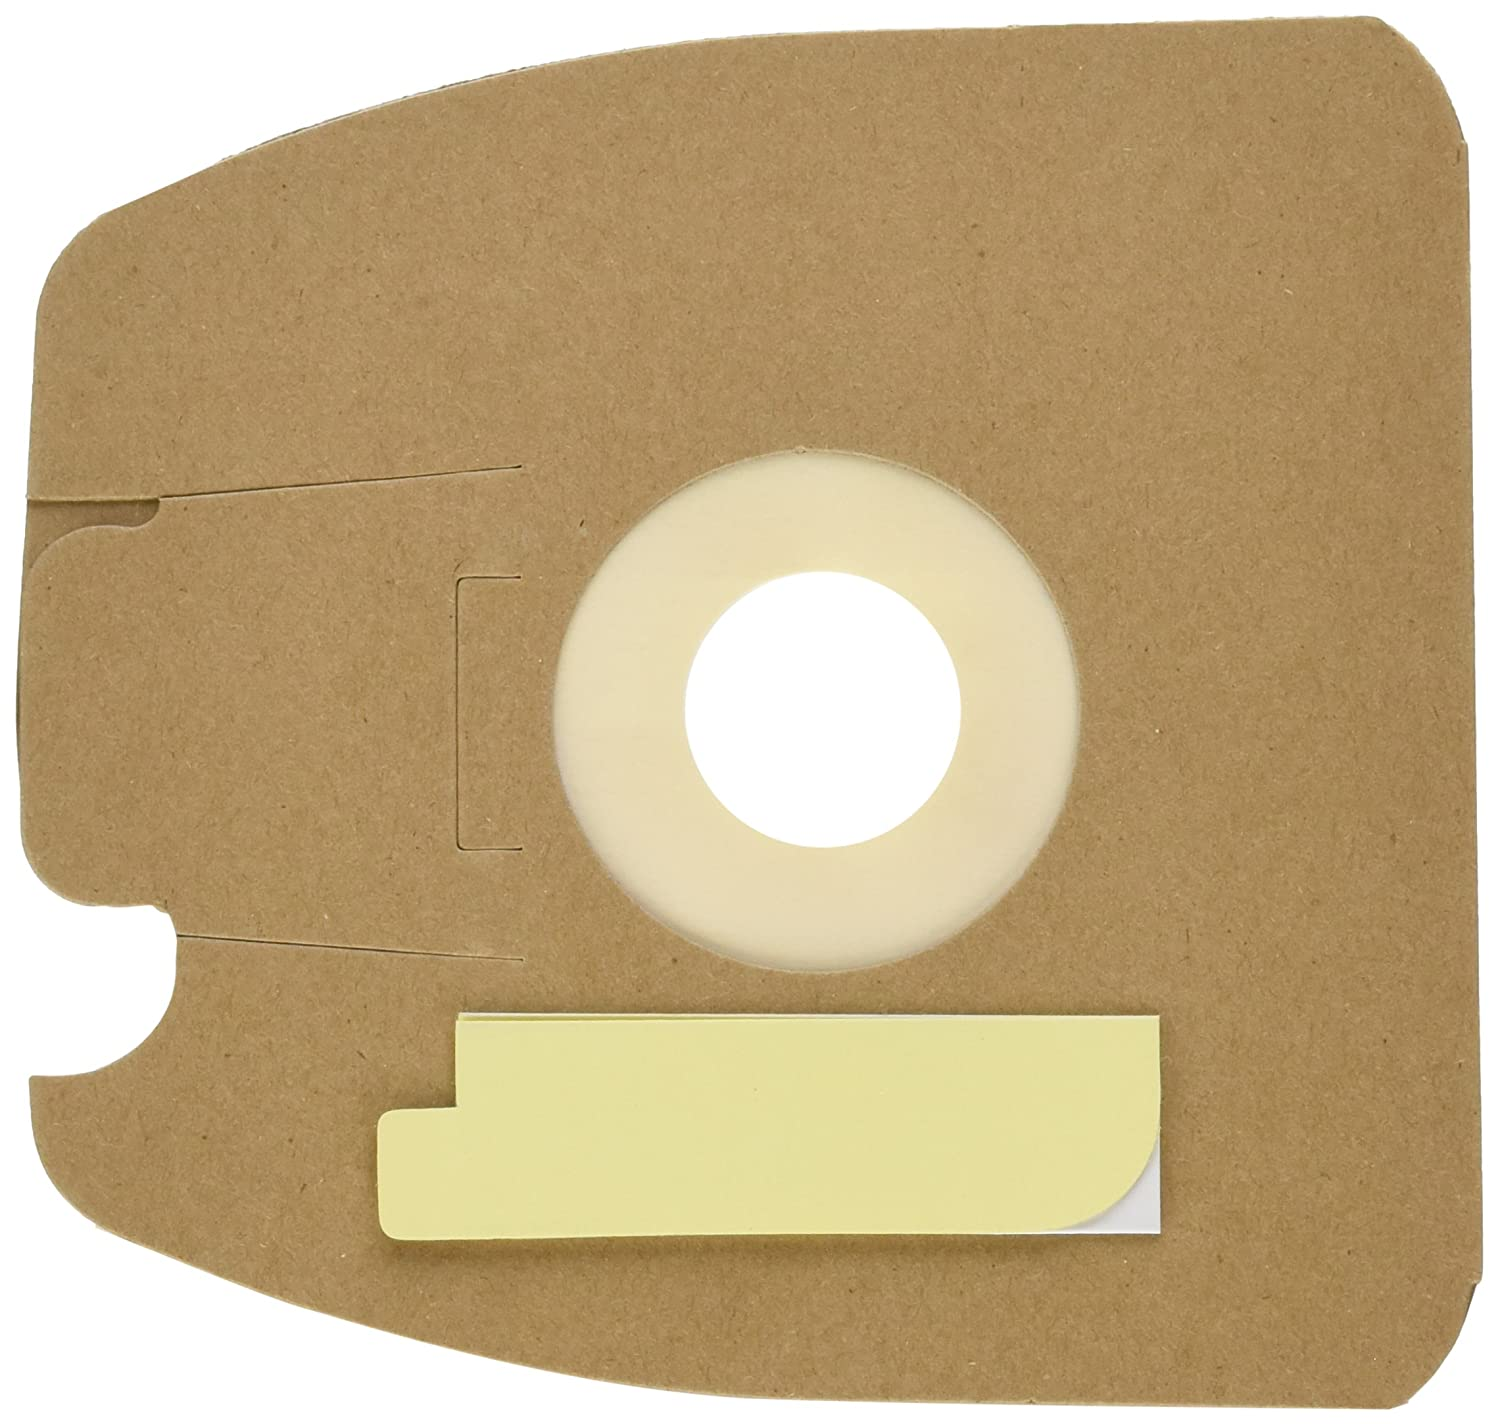 Think Crucial 9 Replacements for Eureka MM Bags Fit Mighty Mite & Sanitaire, Compatible With Part # 60295, 60296 & 60297